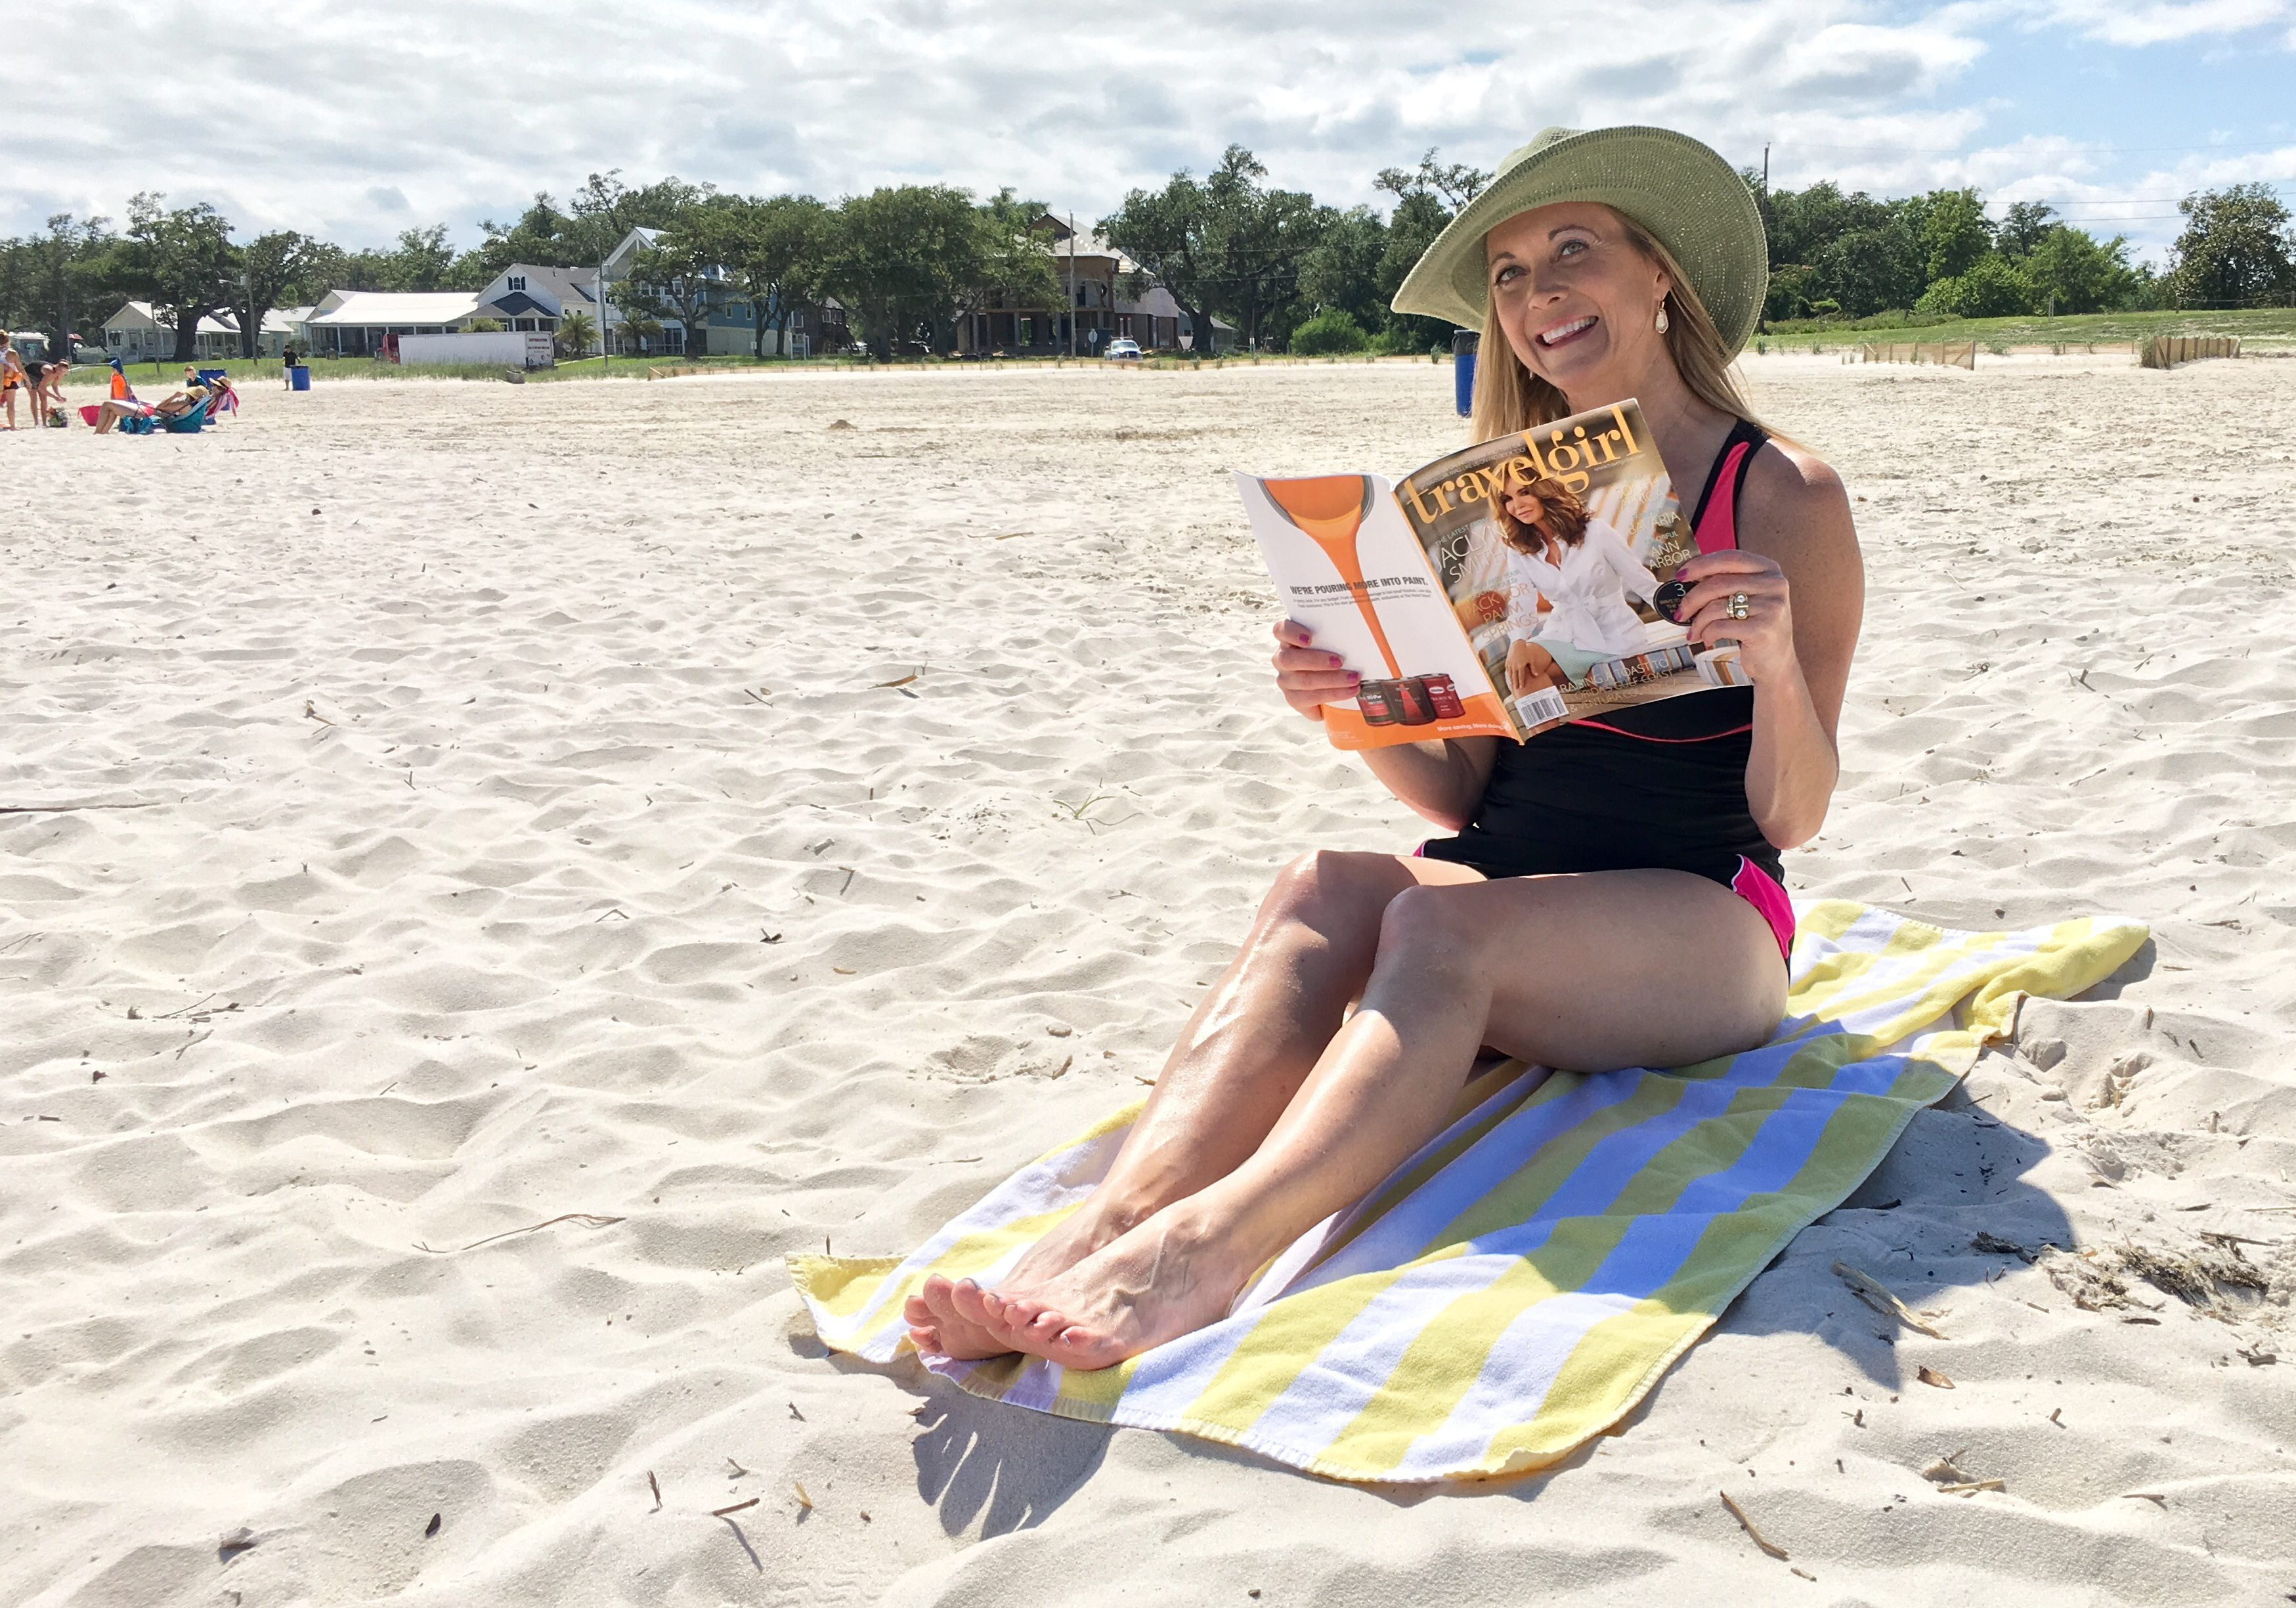 Plant your beach towel and relax with a great book or magazine. (Derek Felton/WGNO)